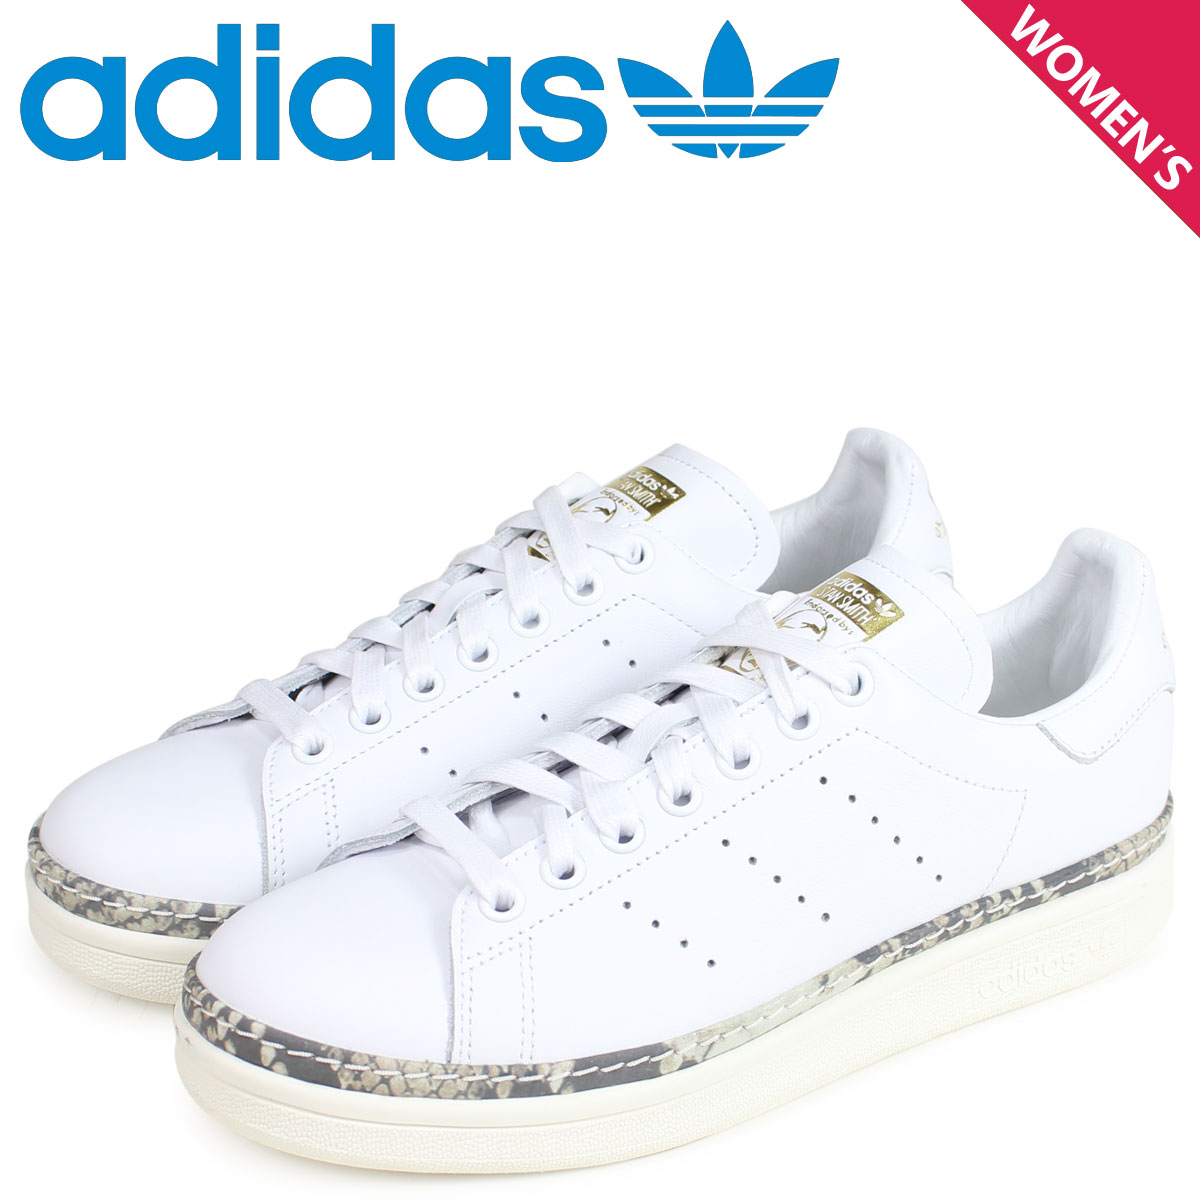 adidas Originals Stan Smith New Bold Shoes for Women